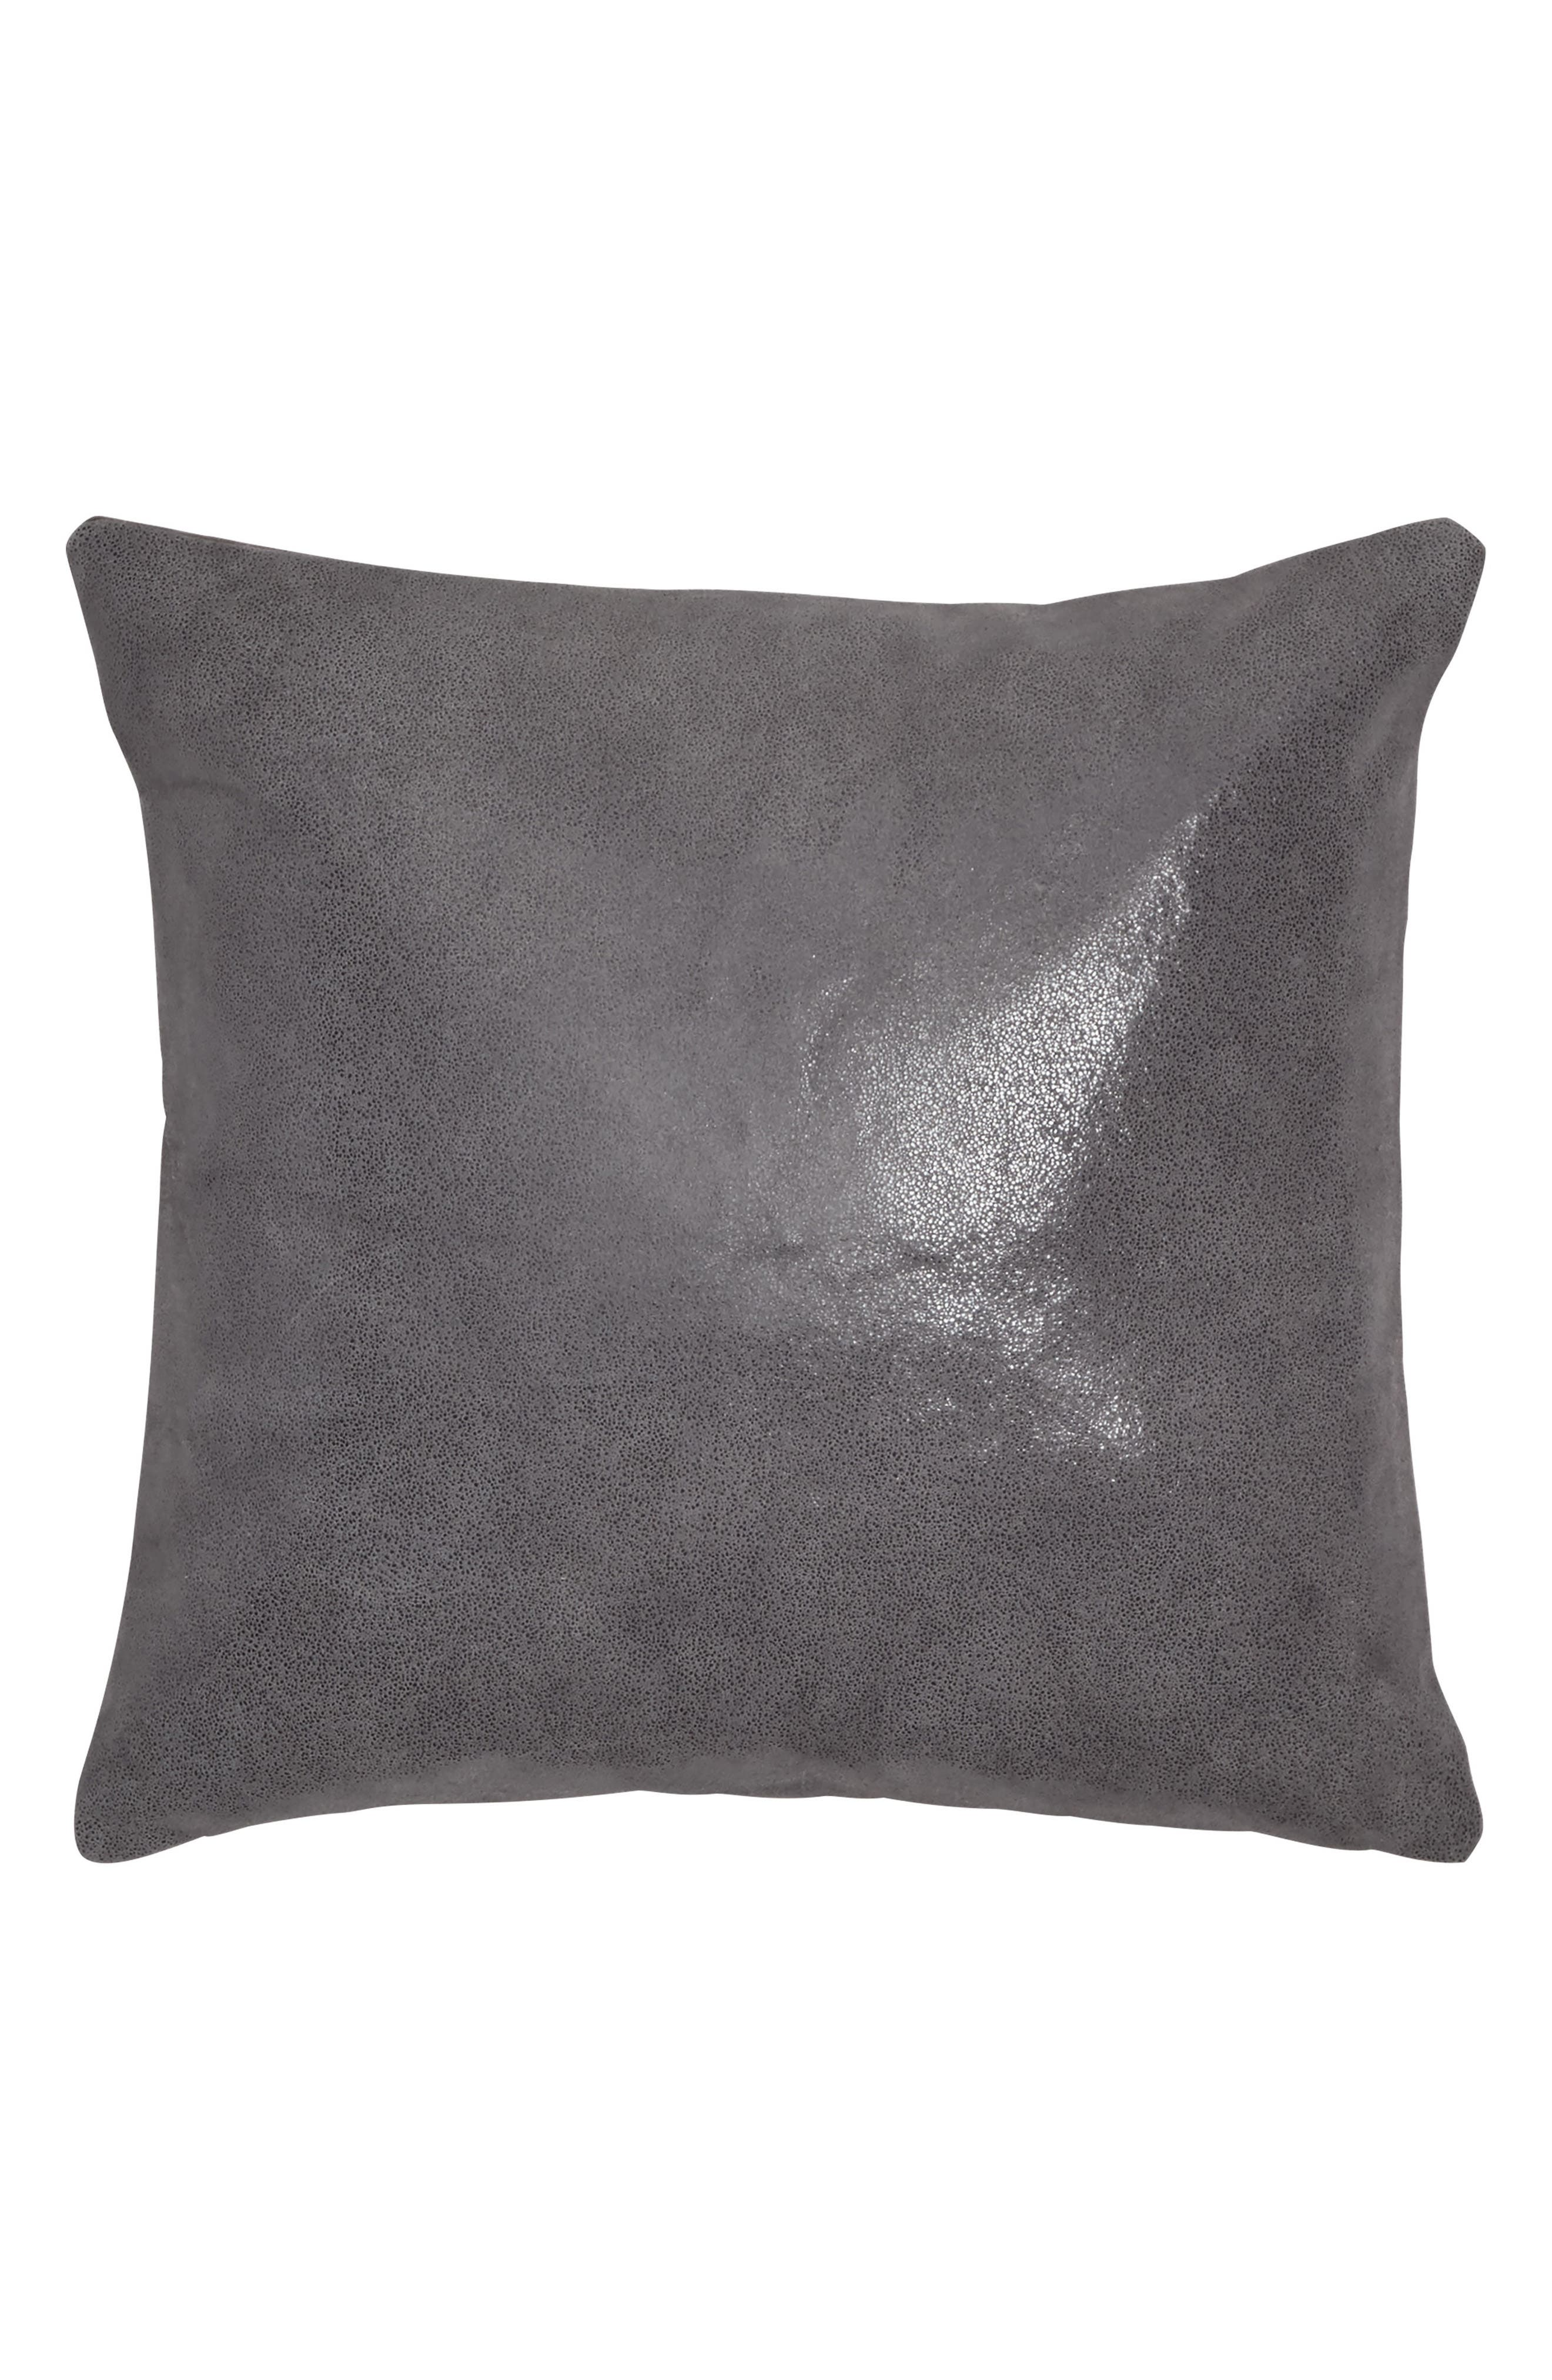 donna karan new york moonscape leather accent pillow